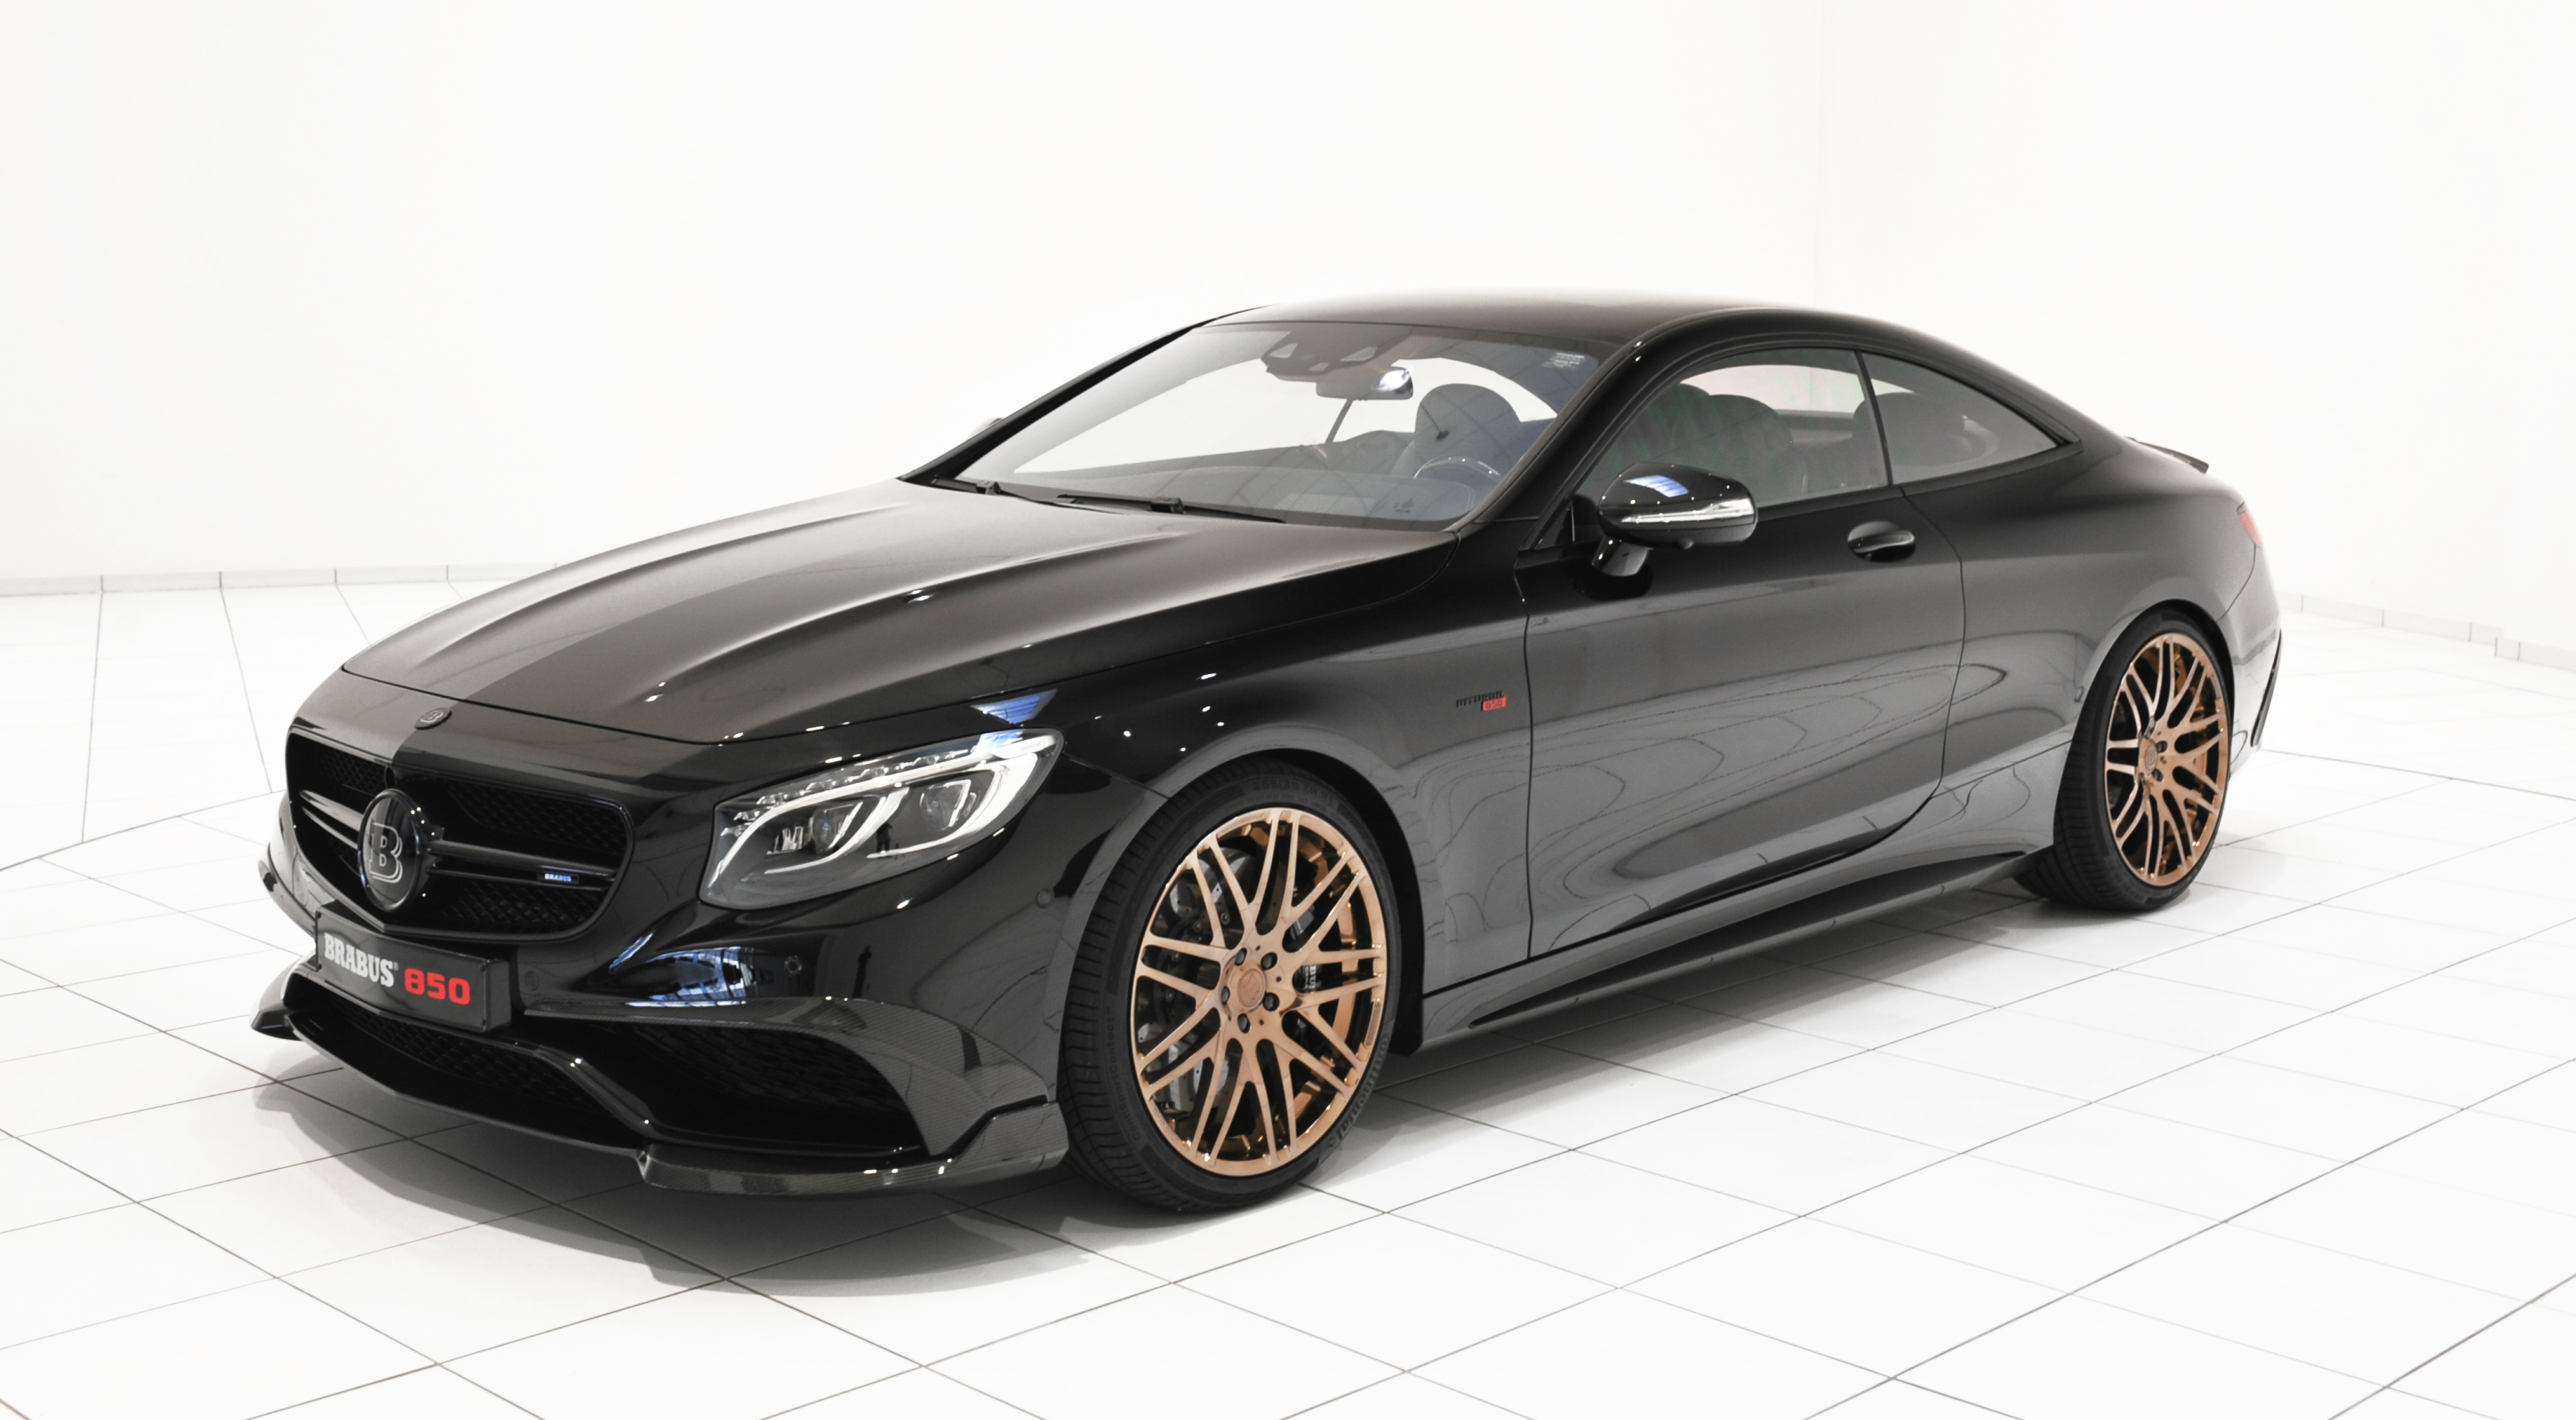 Brabus 850 6 0 biturbo coupe mercedes s 63 amg coupe for Mercedes benz 850